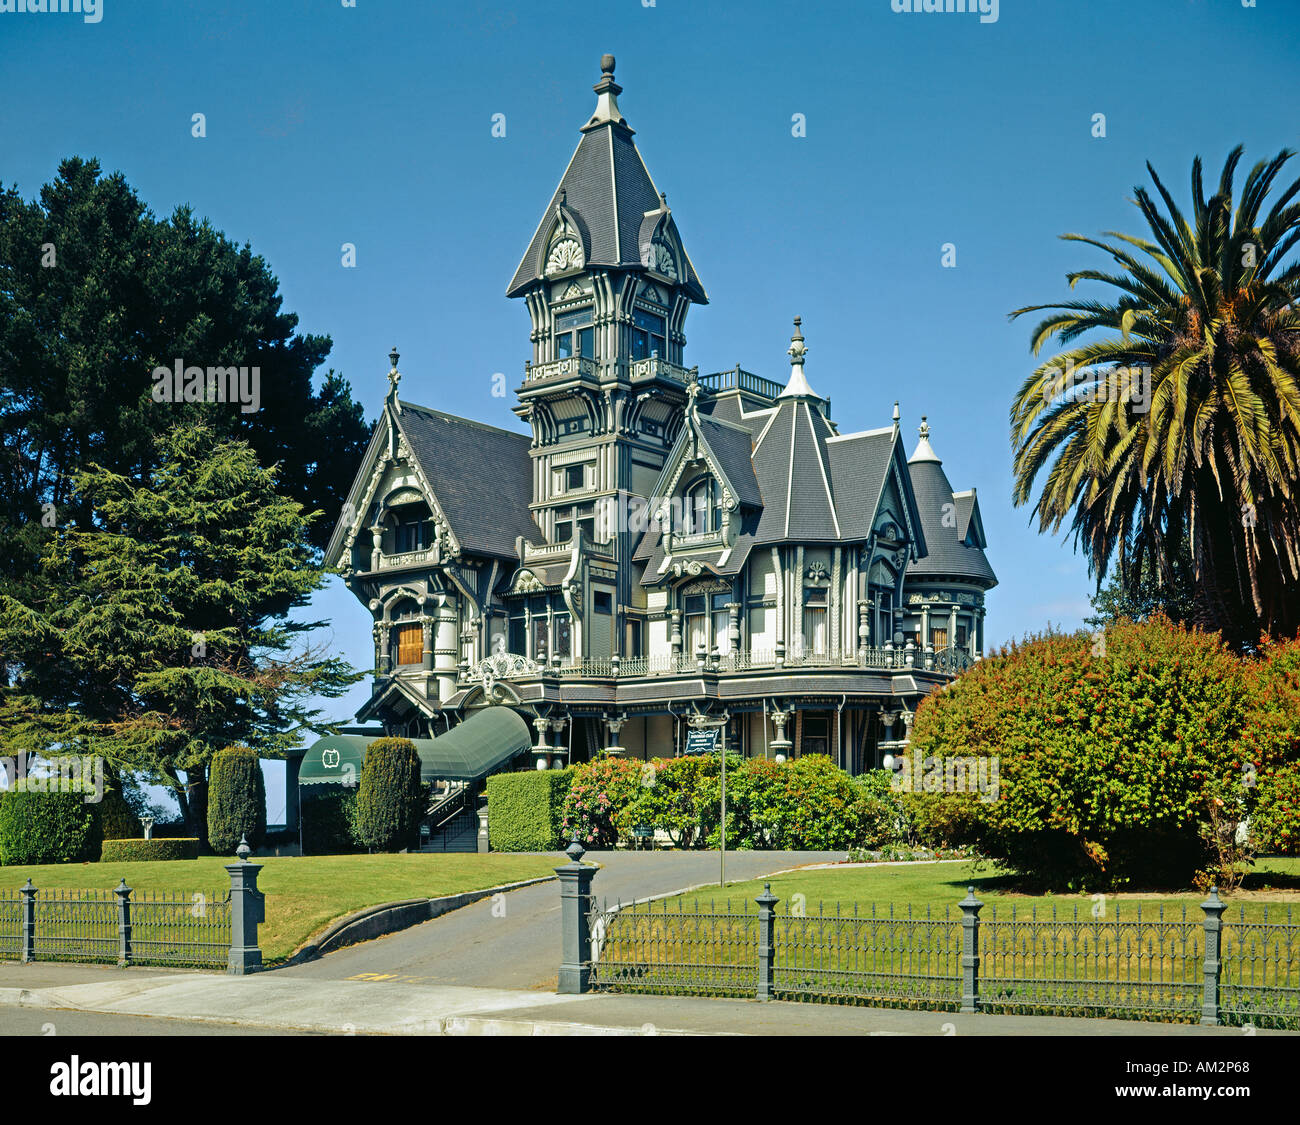 Carson Mansion in Eureka California USA - Stock Image